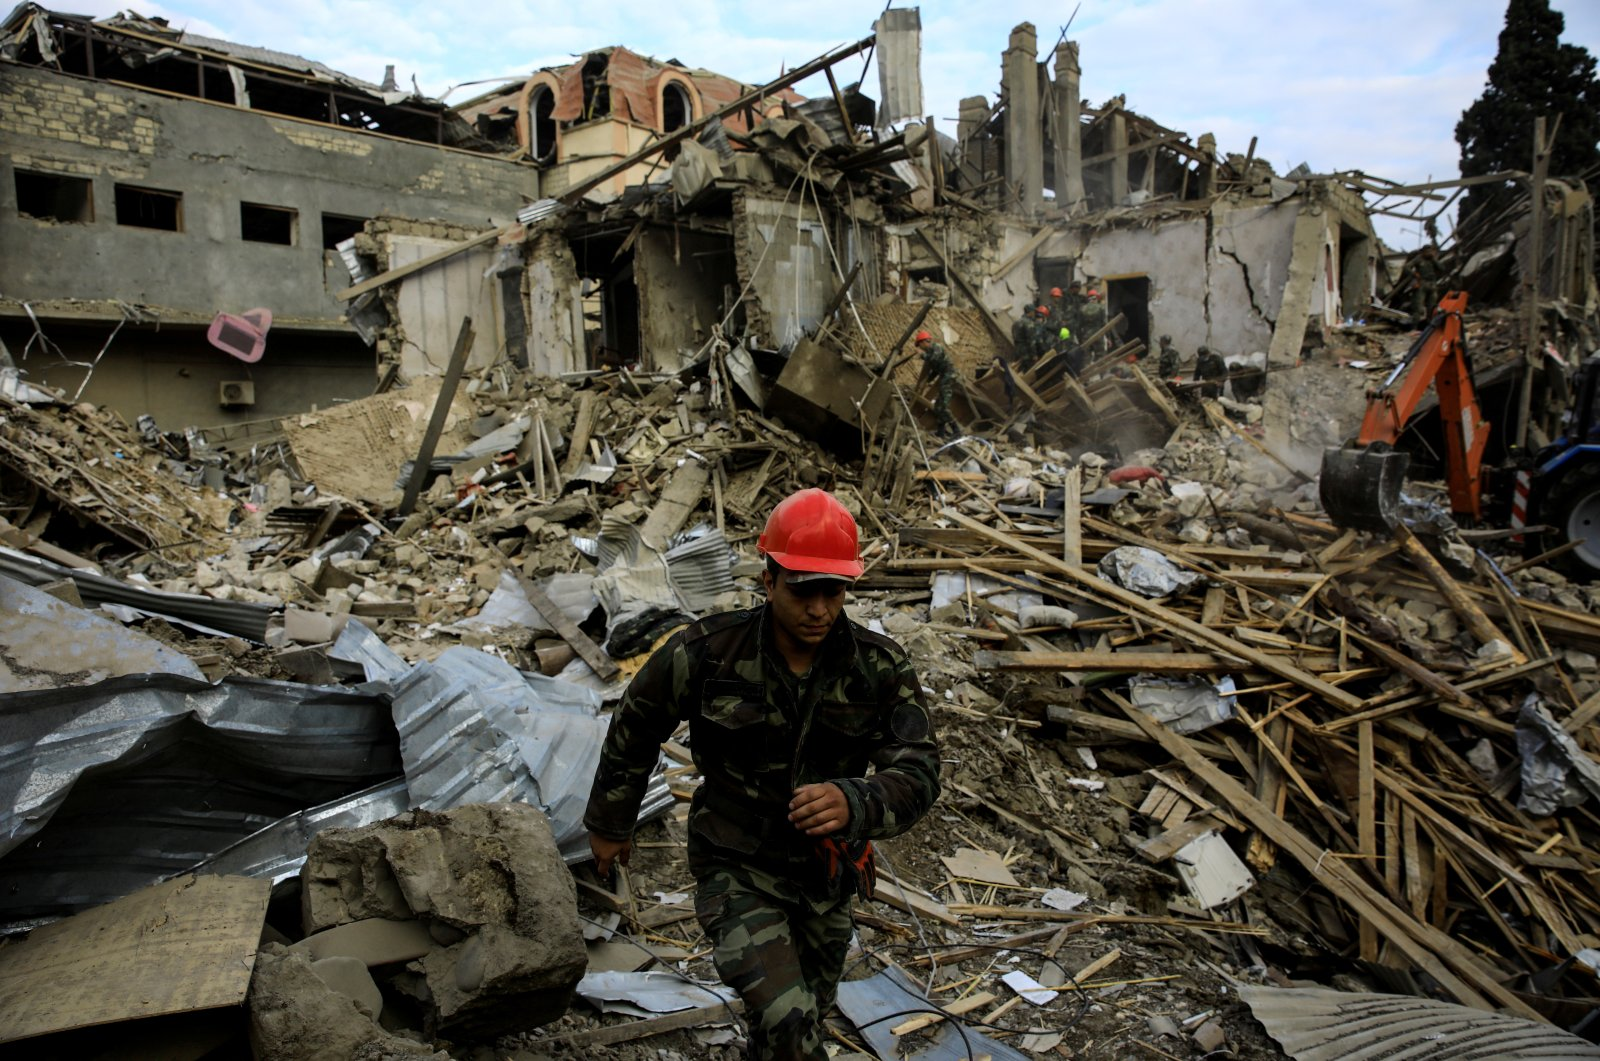 Search and rescue teams work on the blast site hit by a rocket during the fighting in the city of Ganja, Azerbaijan Oct. 11, 2020. (Reuters Photo)